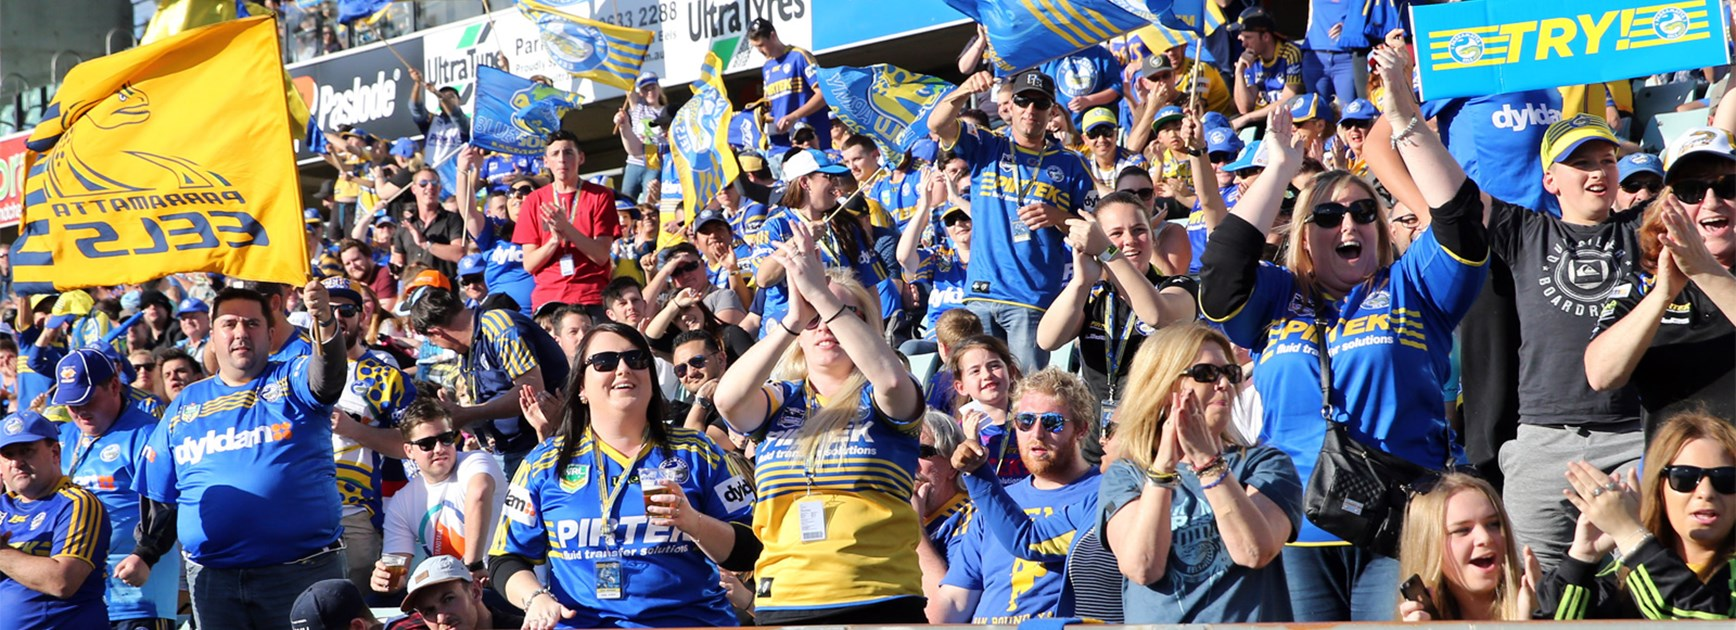 Eels fans applaud their team at Pirtek Stadium.